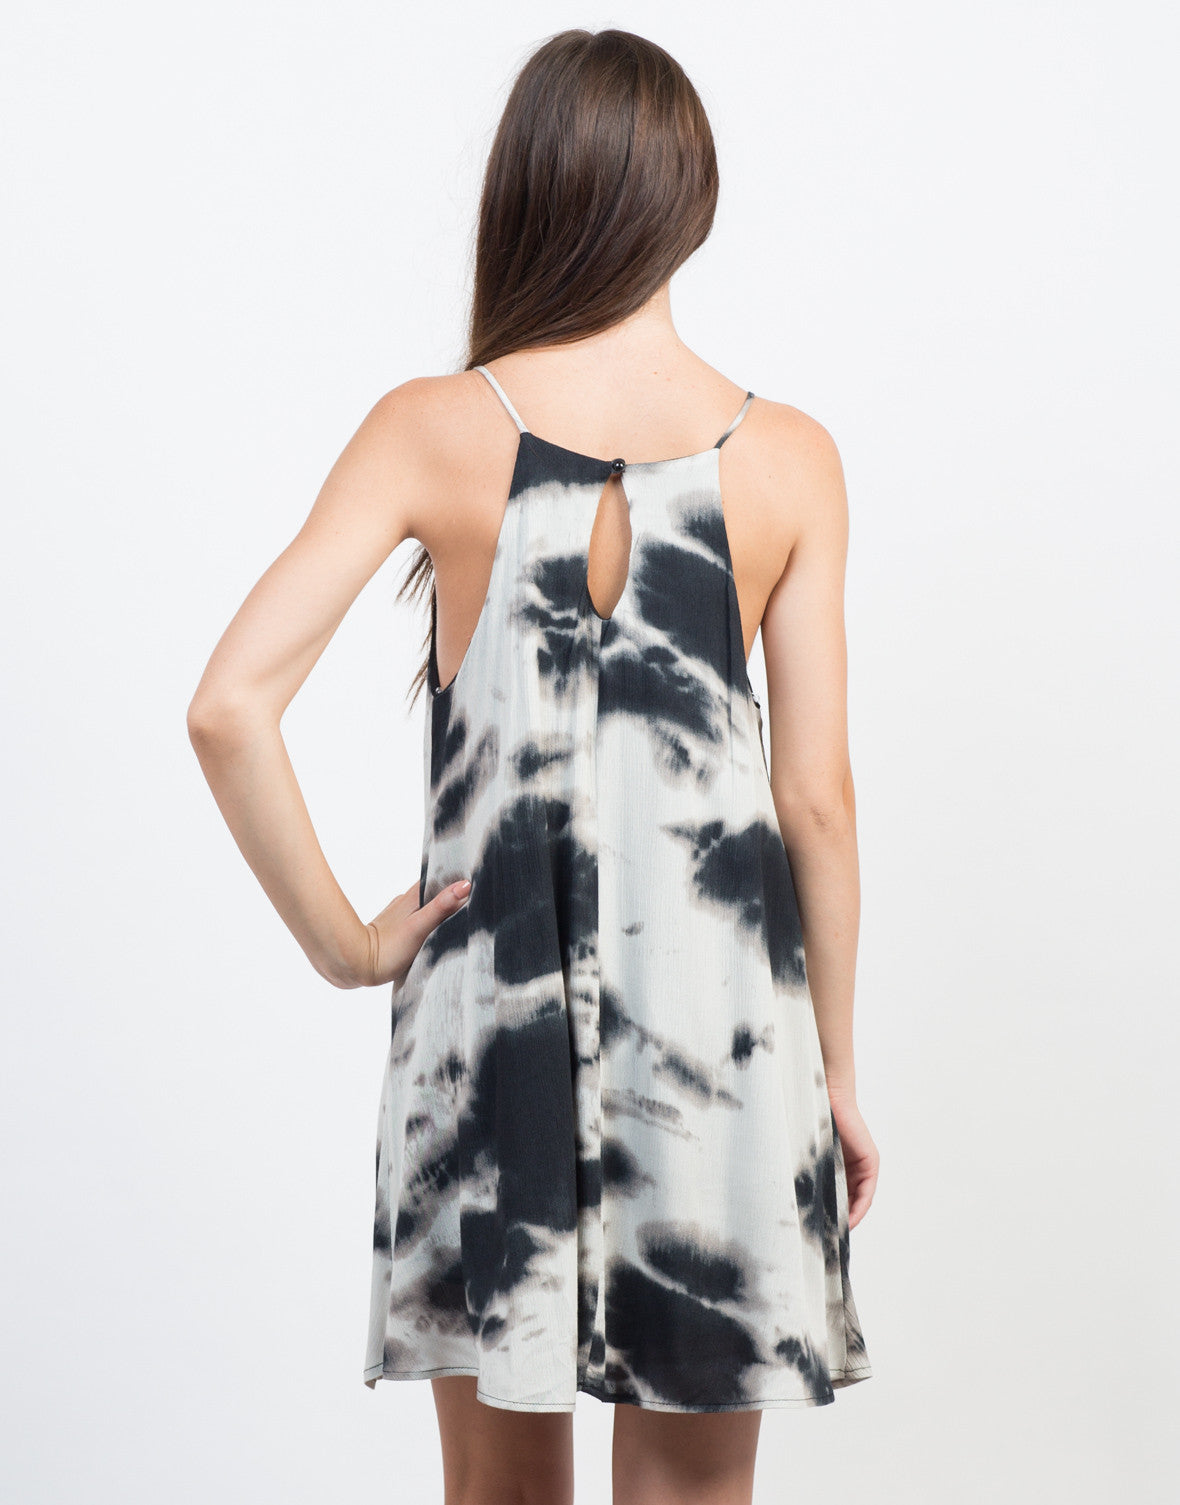 Back View of Groovy Spin Flowy Dress